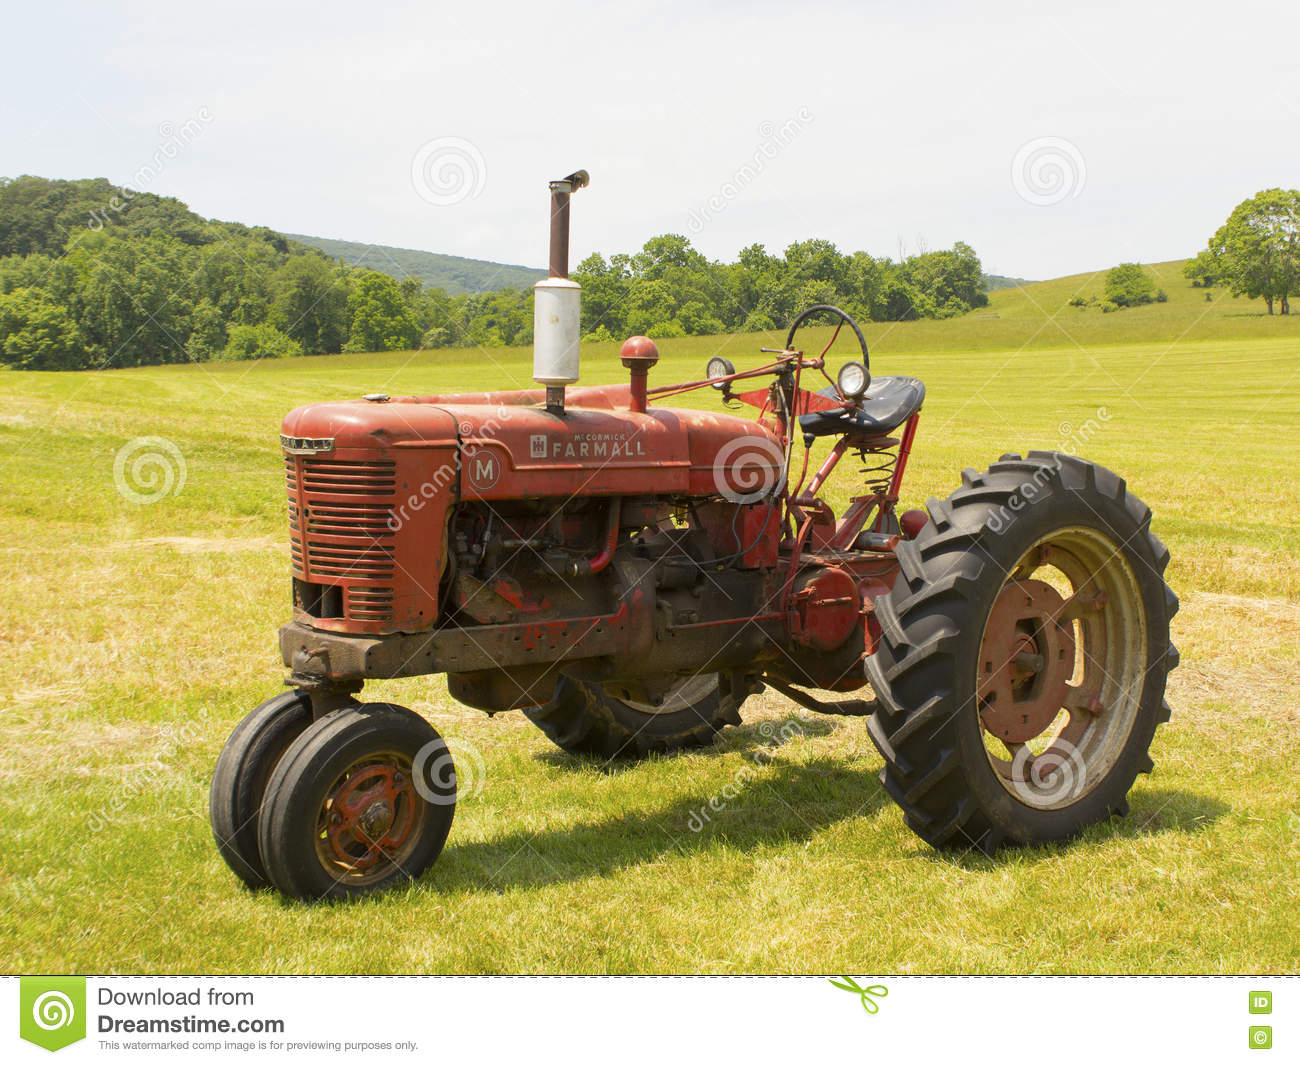 Old Farmall tractor sitting in a field